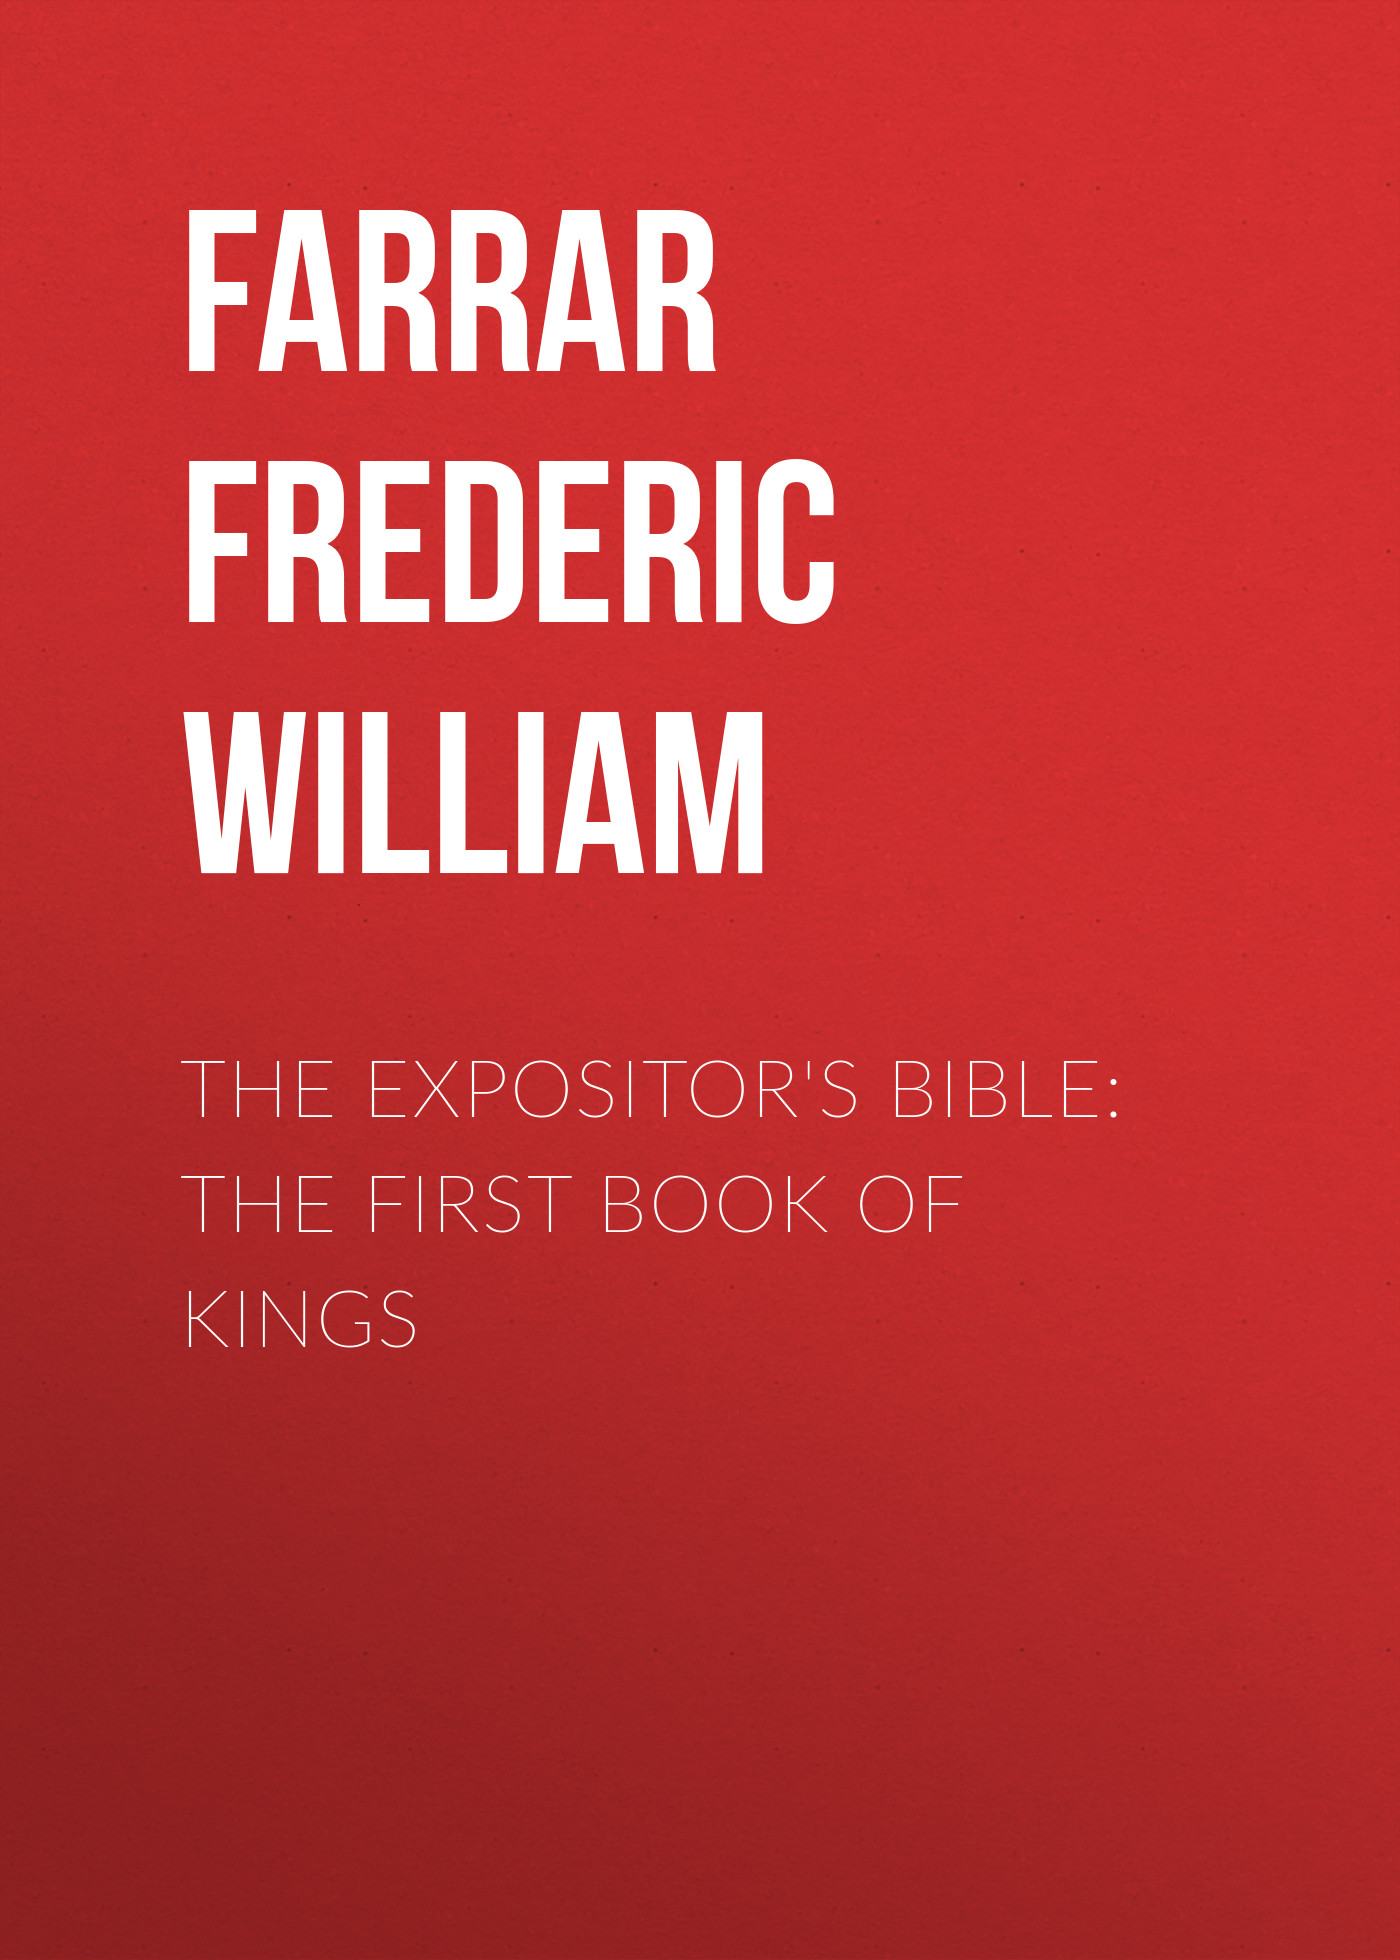 Farrar Frederic William The Expositor's Bible: The First Book of Kings my first bible stories the nativity